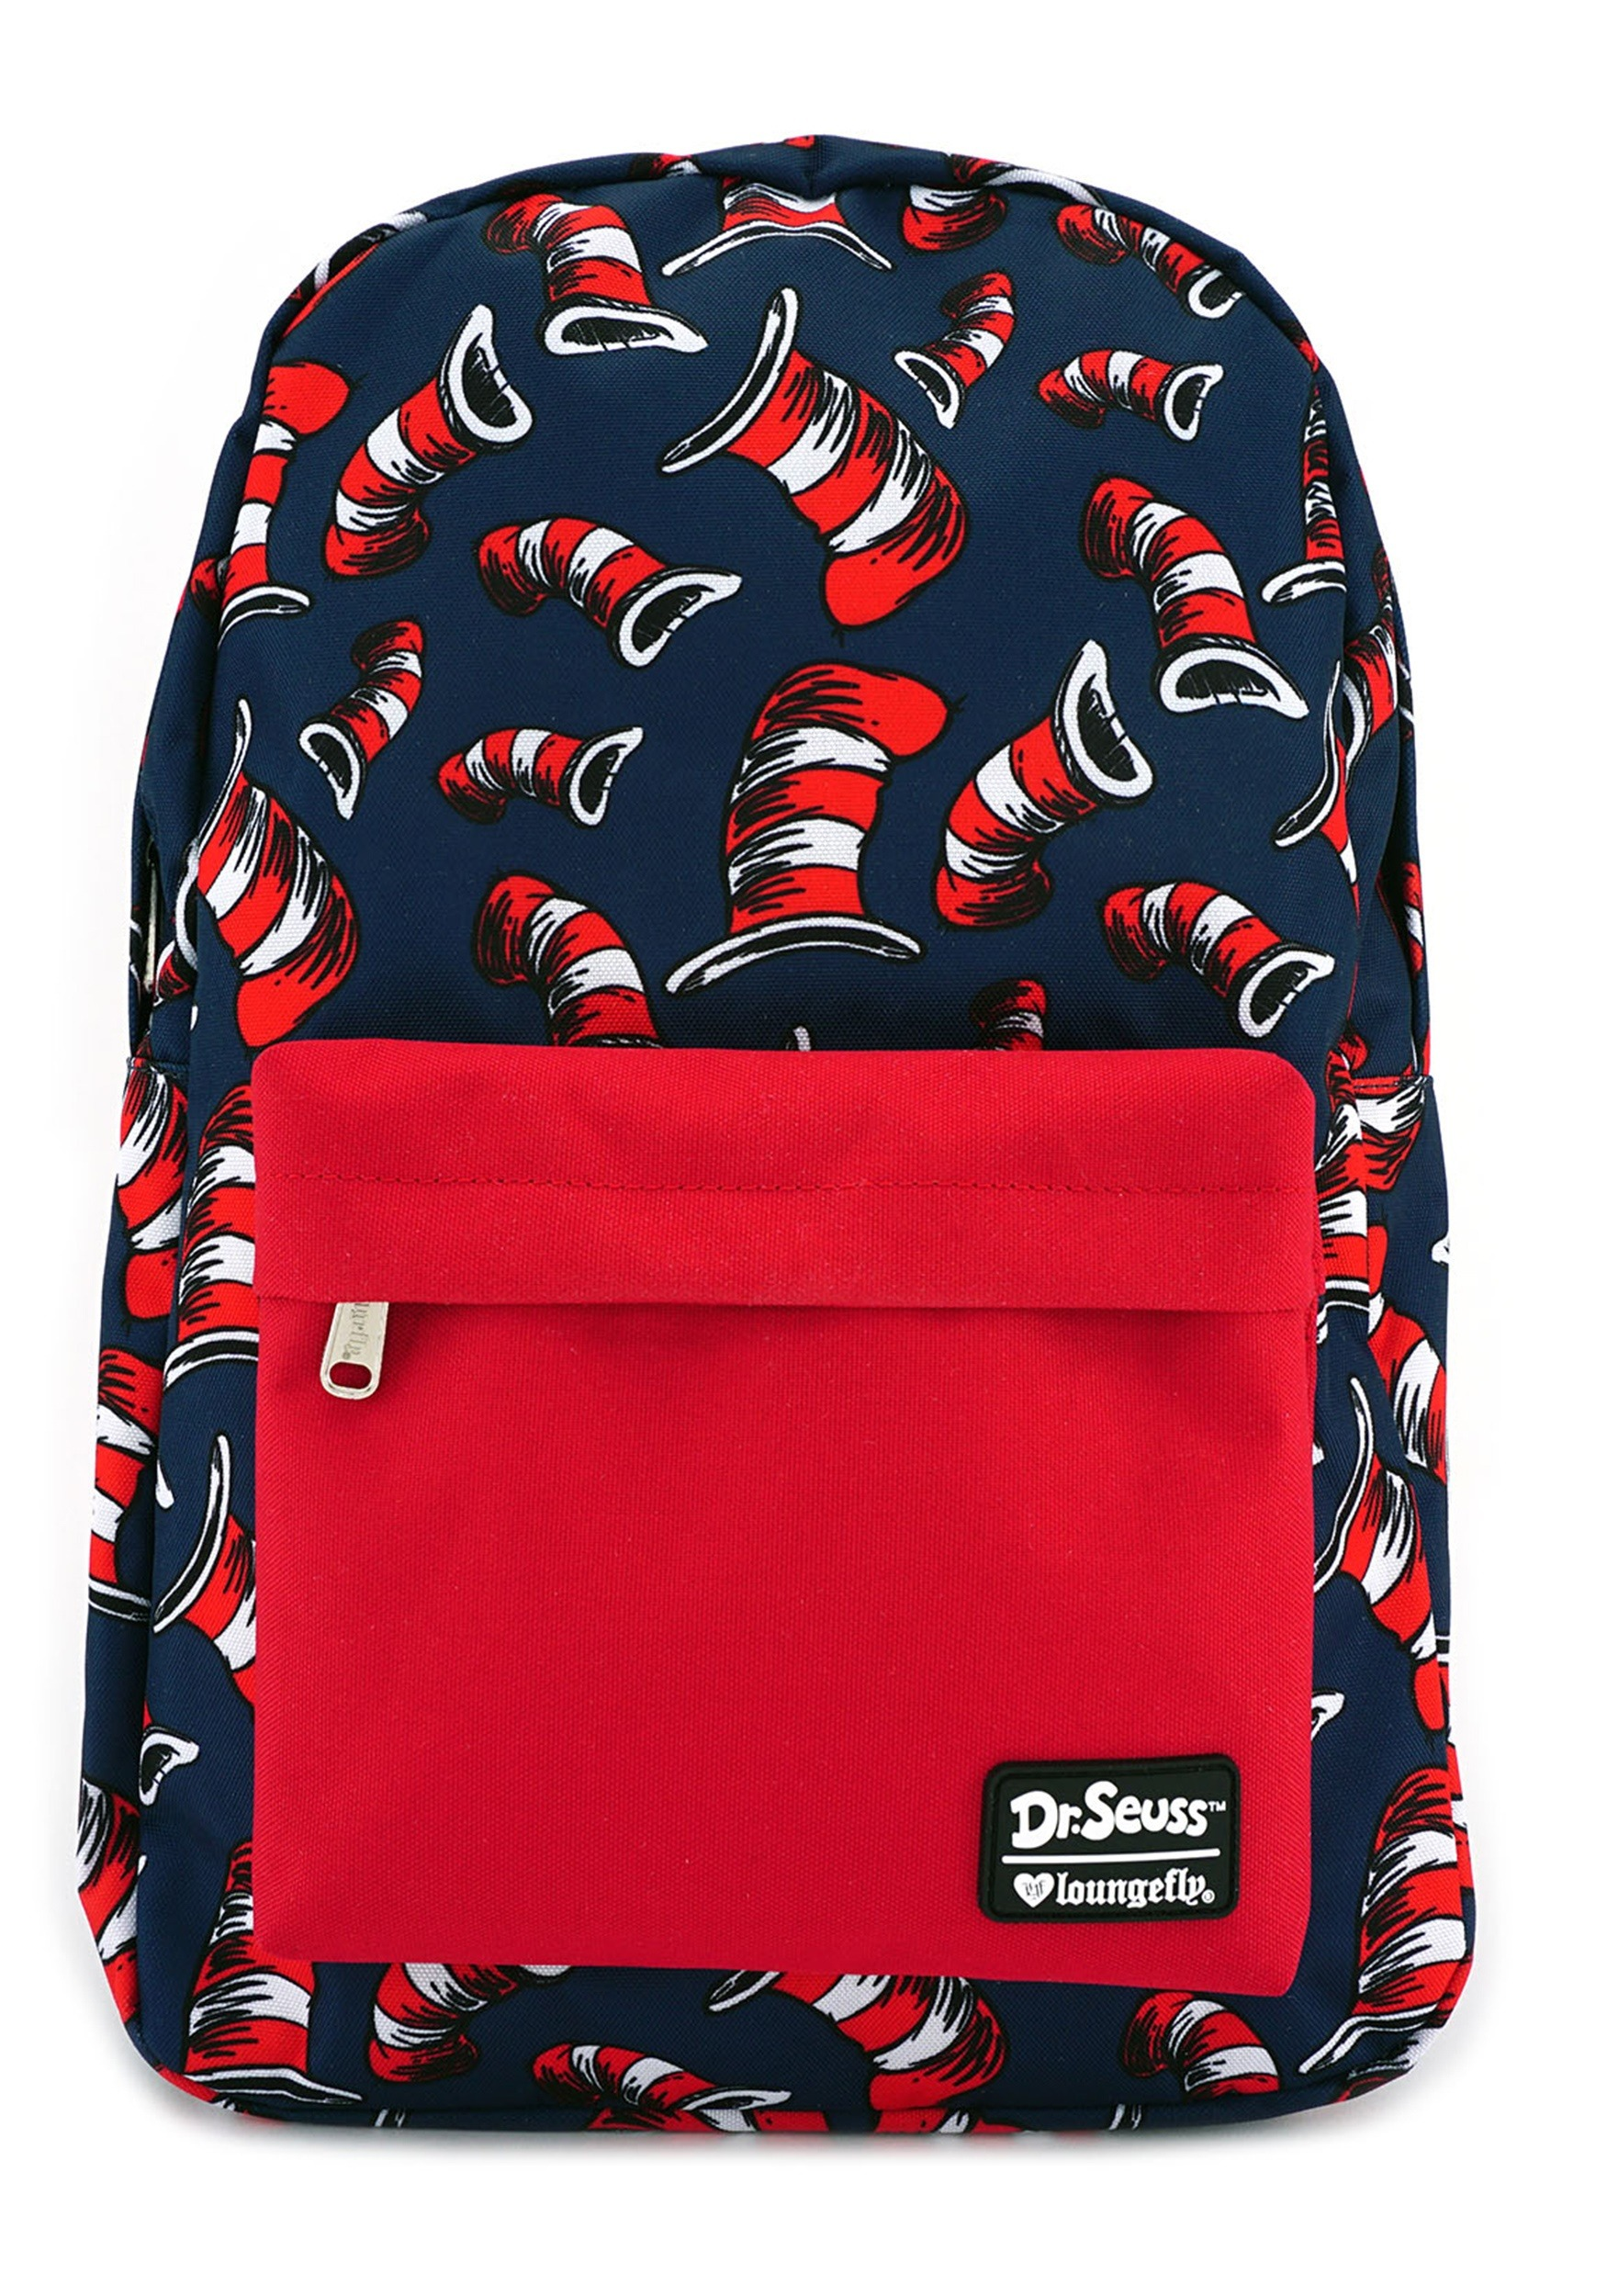 Loungefly Dr Seuss Cat In The Hat Backpack